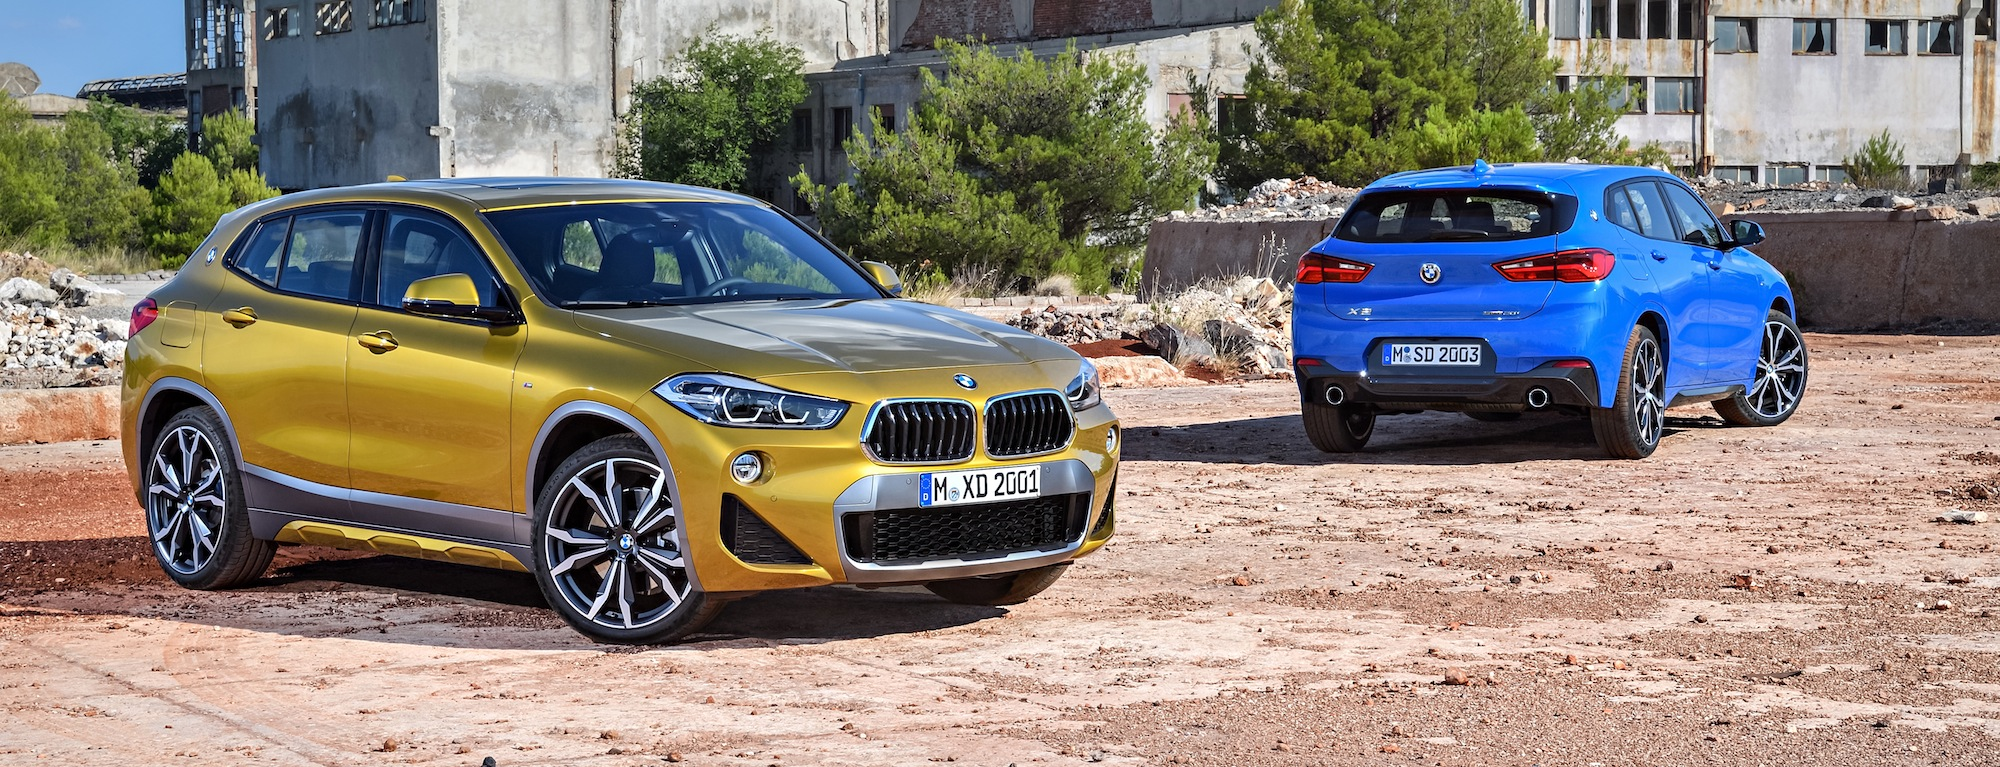 2018 BMW X2: The Sporty Subcompact SUV With The BMW Touch